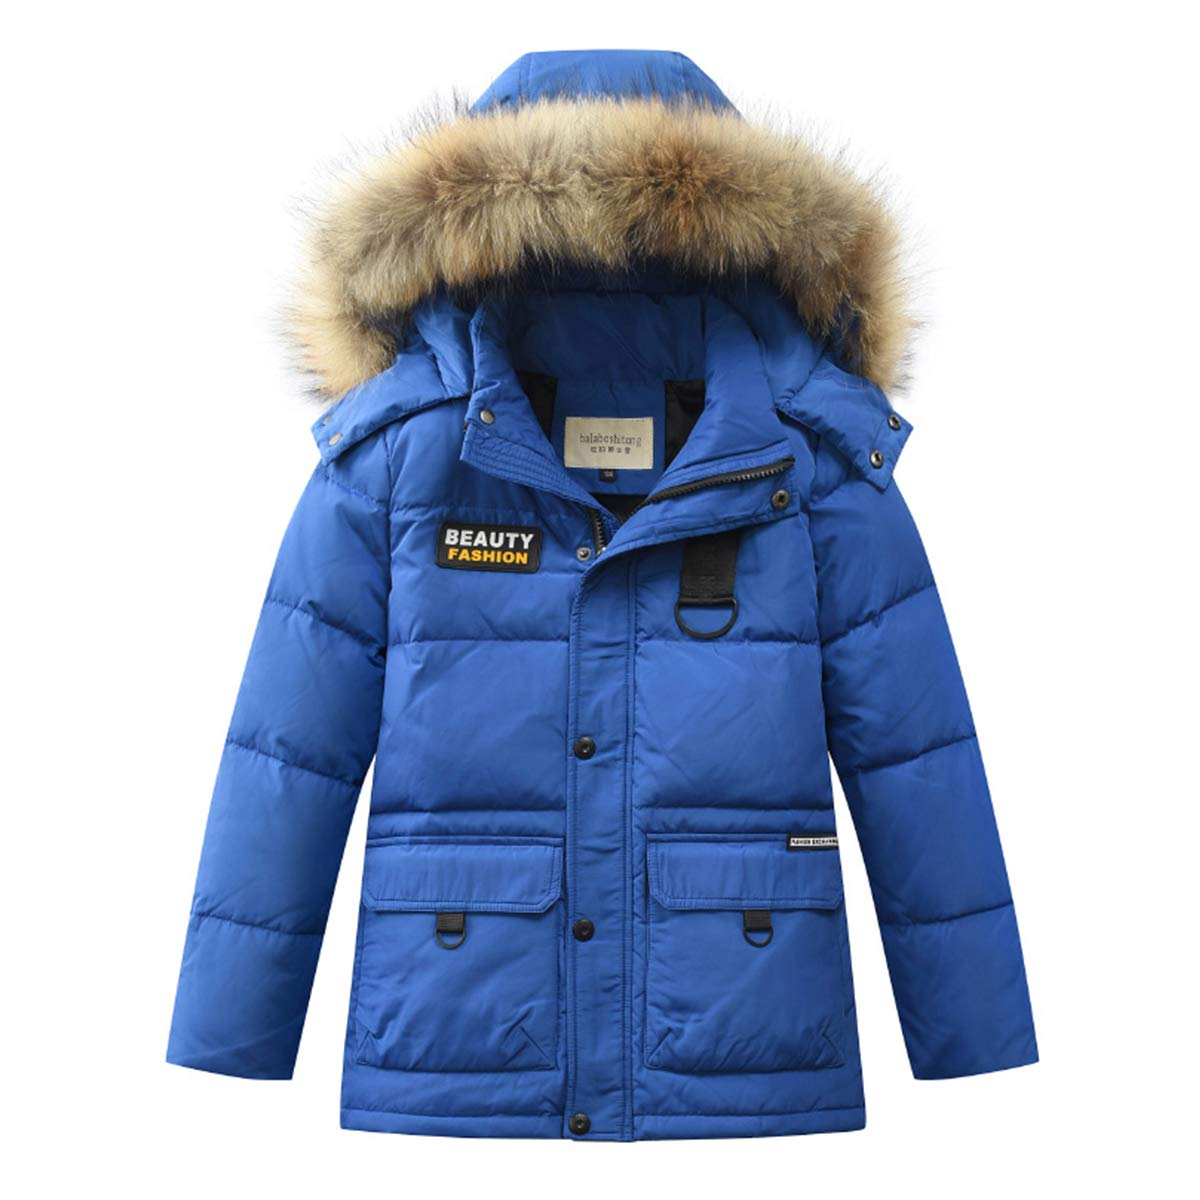 LISUEYNE Boys Kids Winter Hooded Down Coat Puffer Jacket Big Boys Mid-Long LC137MY